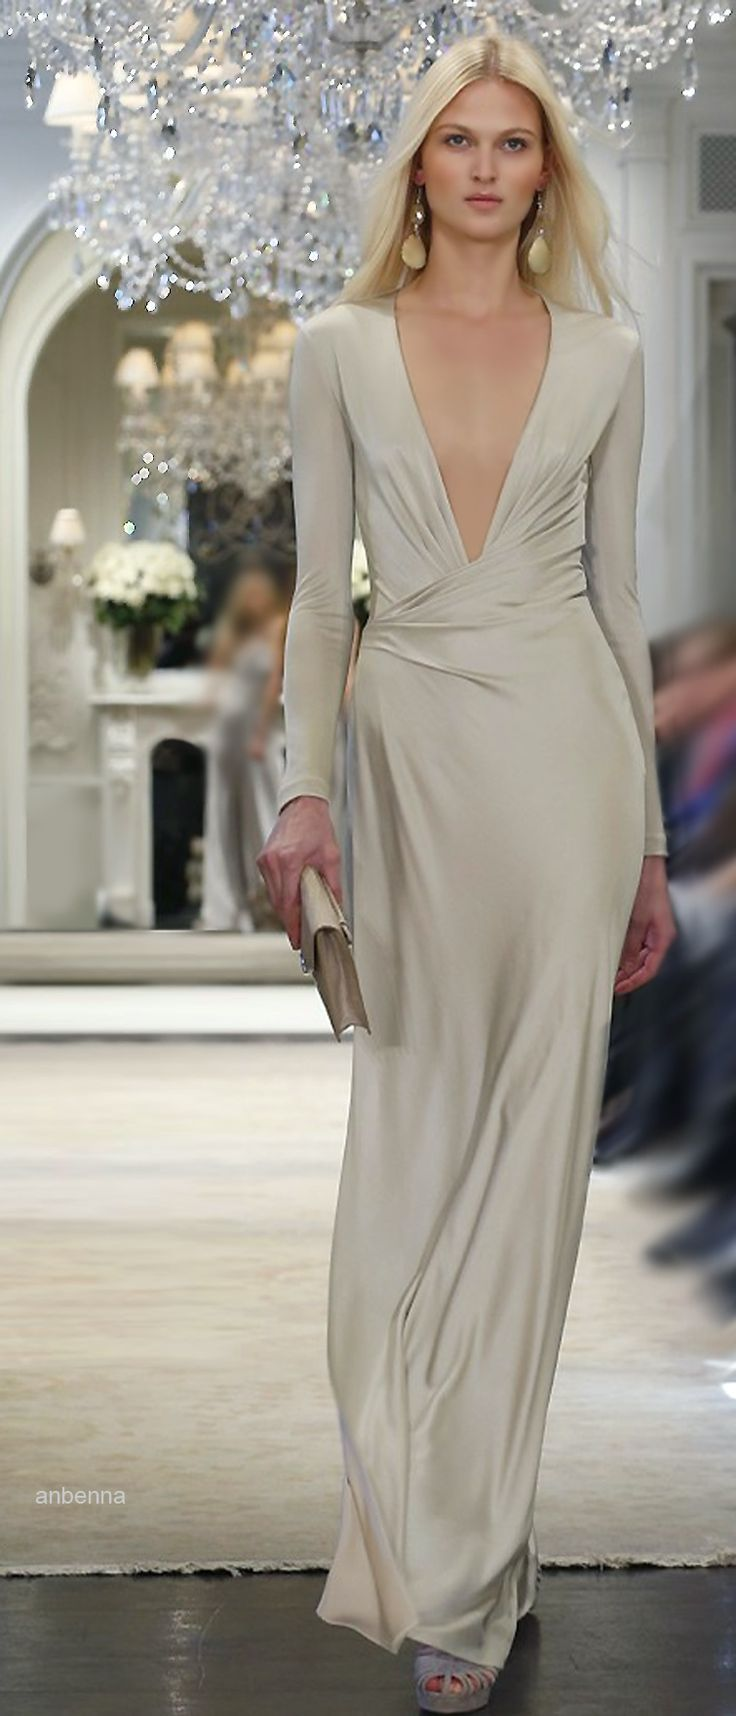 Pin by ZuZu on Gowns of elegance   Pinterest   Formal, Gowns and Clothes